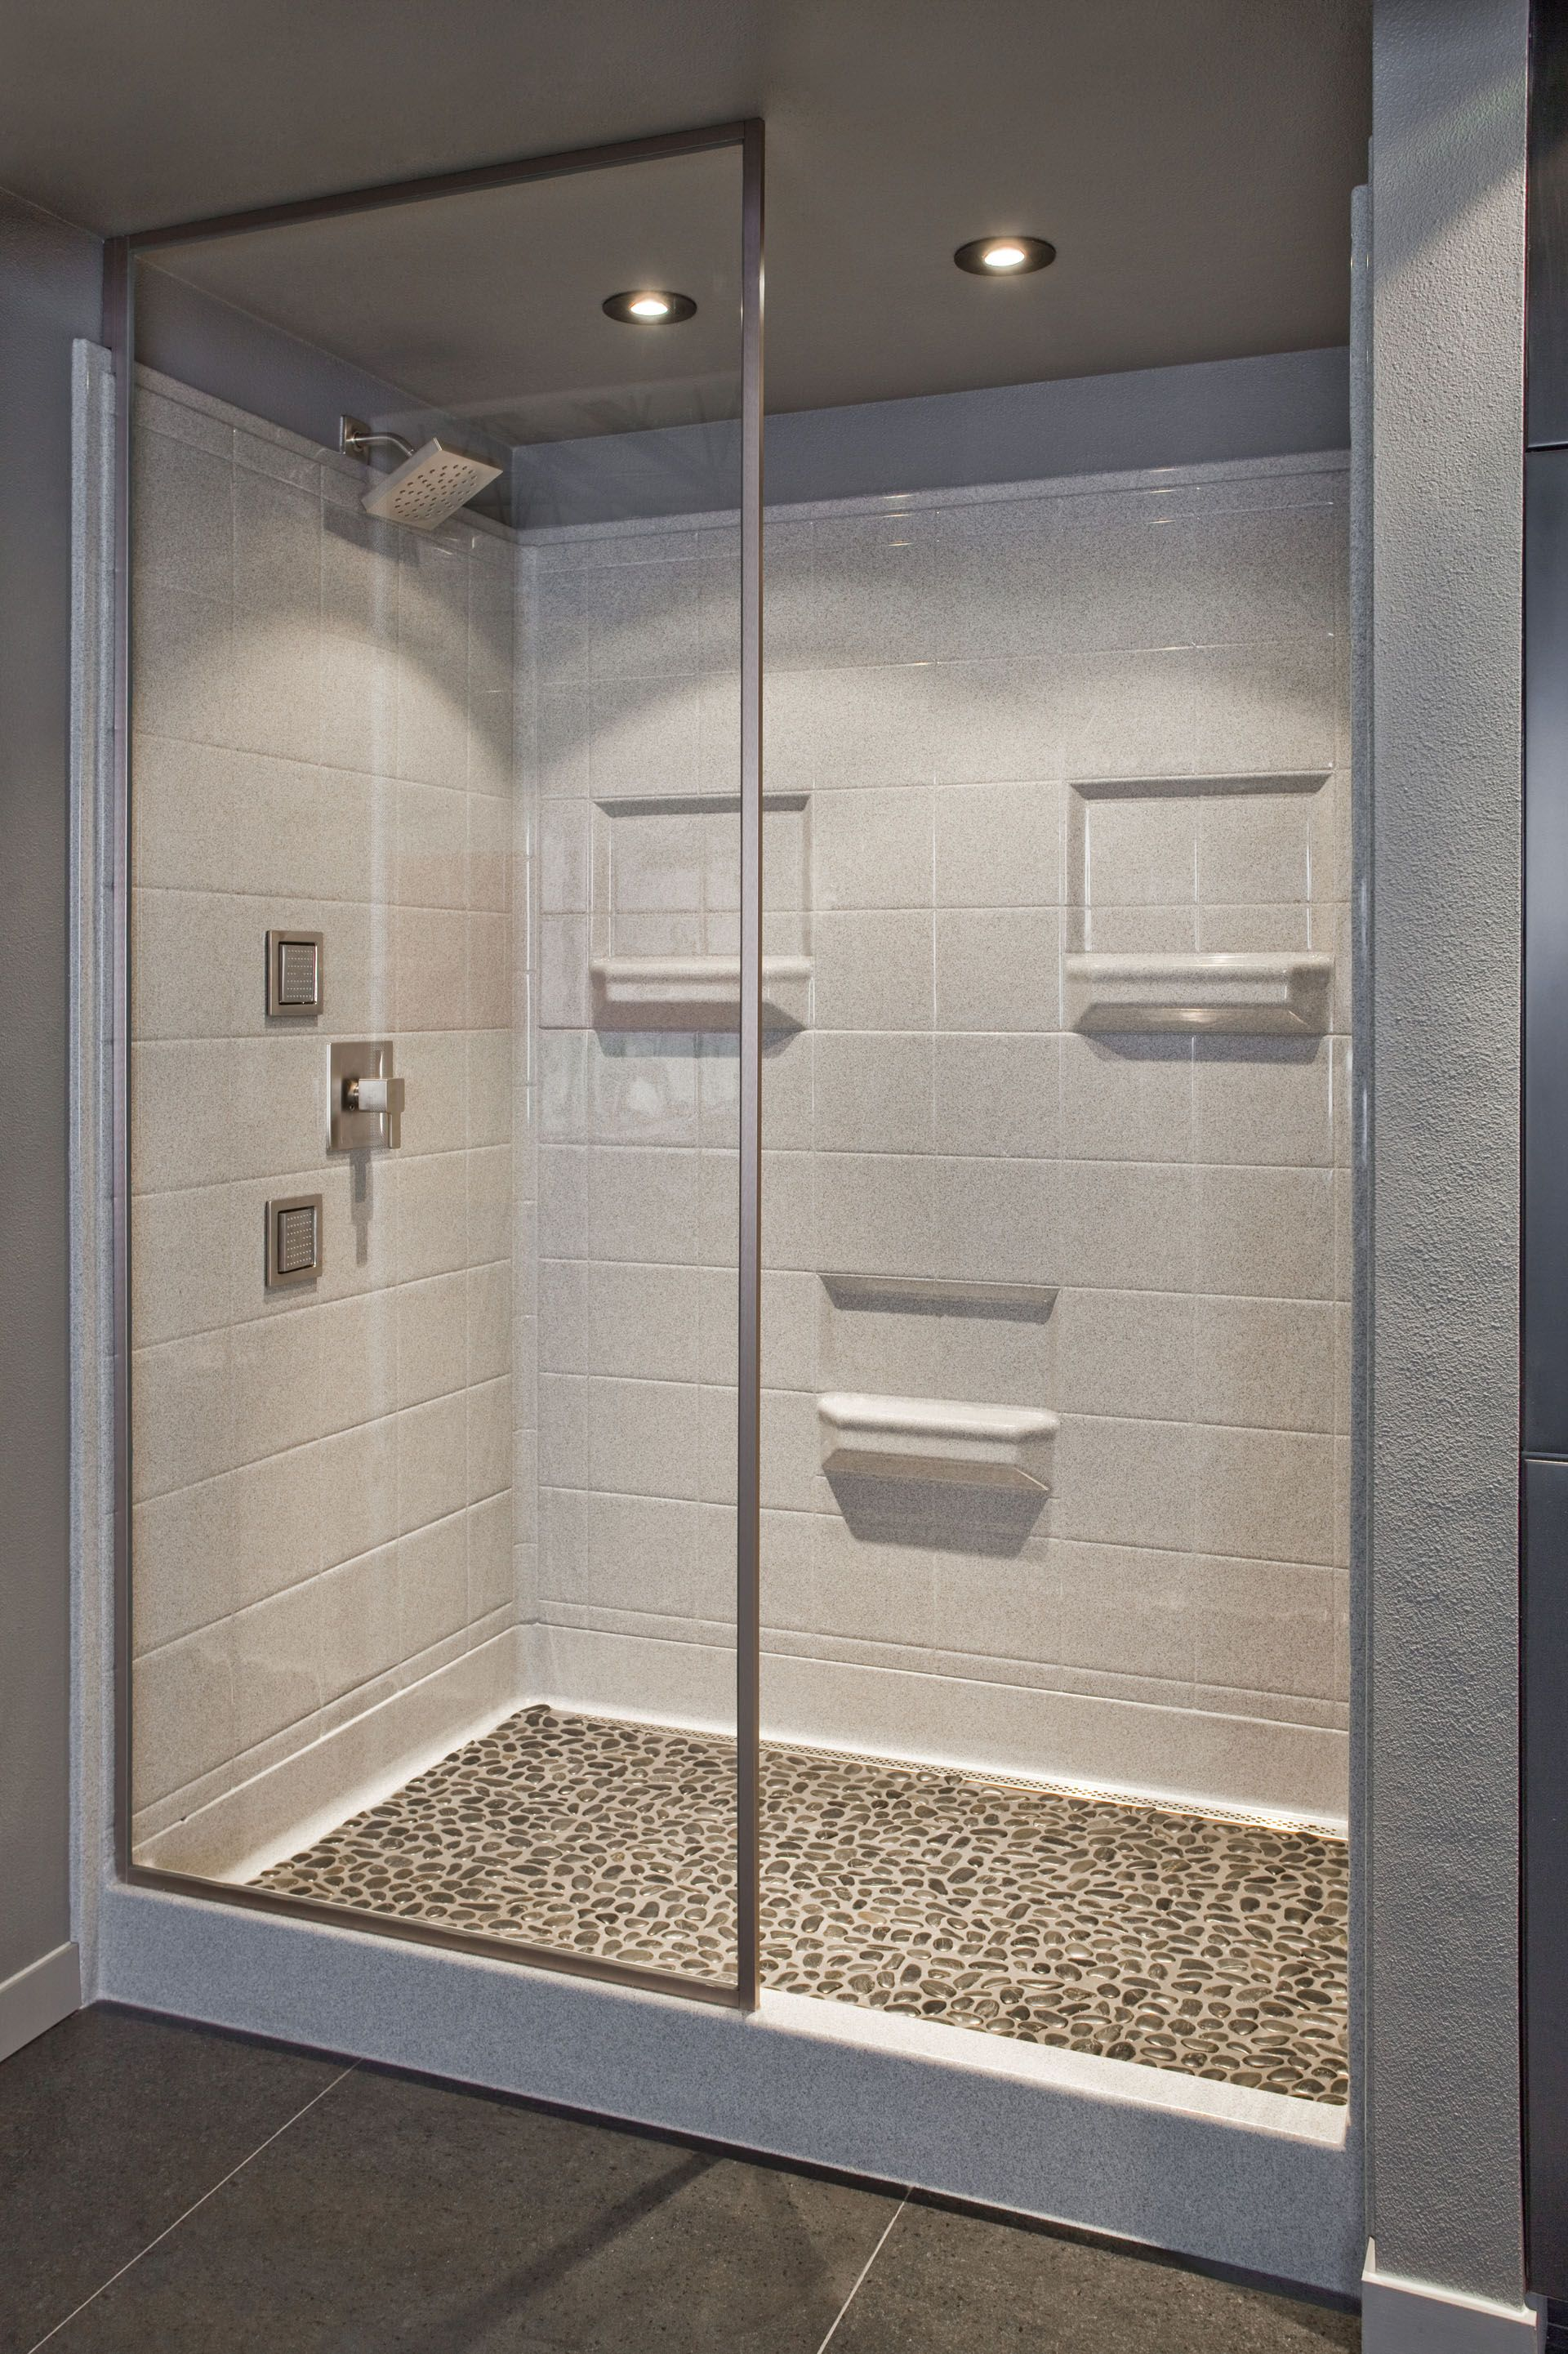 Excellent Showers Systems Pictures Inspiration - Bathtub for ...